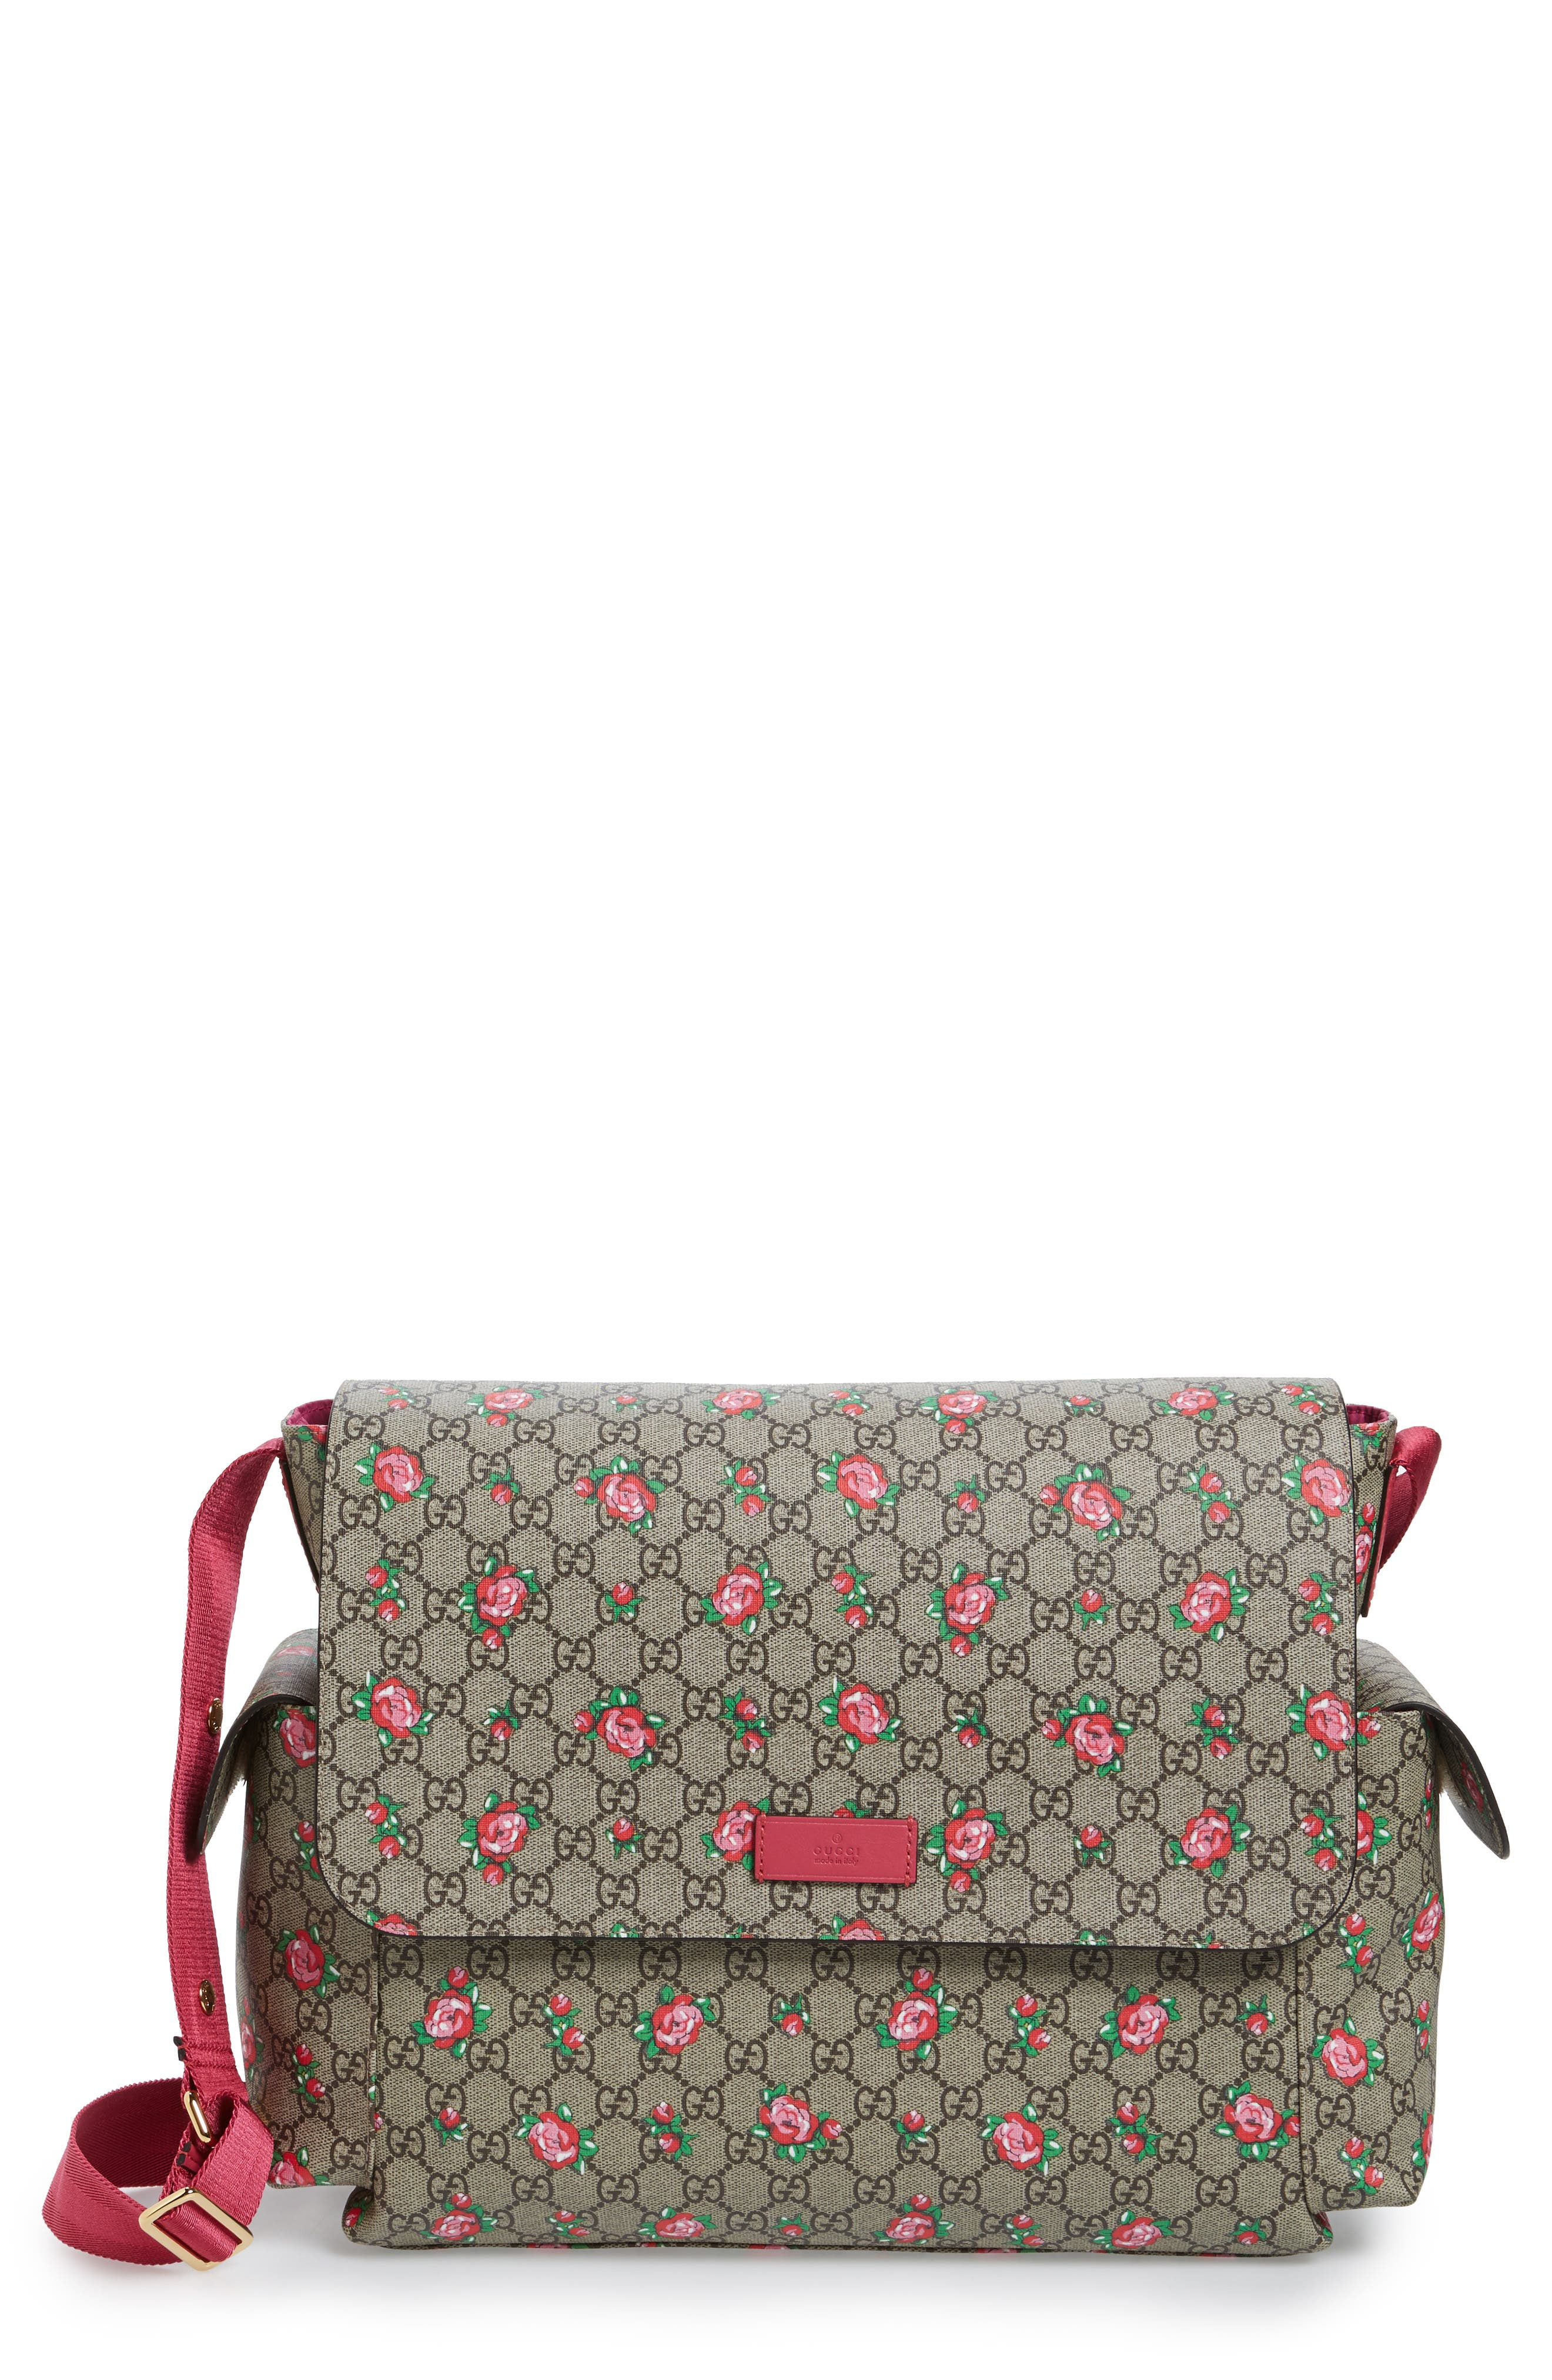 Rose GG Supreme Coated Canvas Diaper Bag,                             Main thumbnail 1, color,                             200